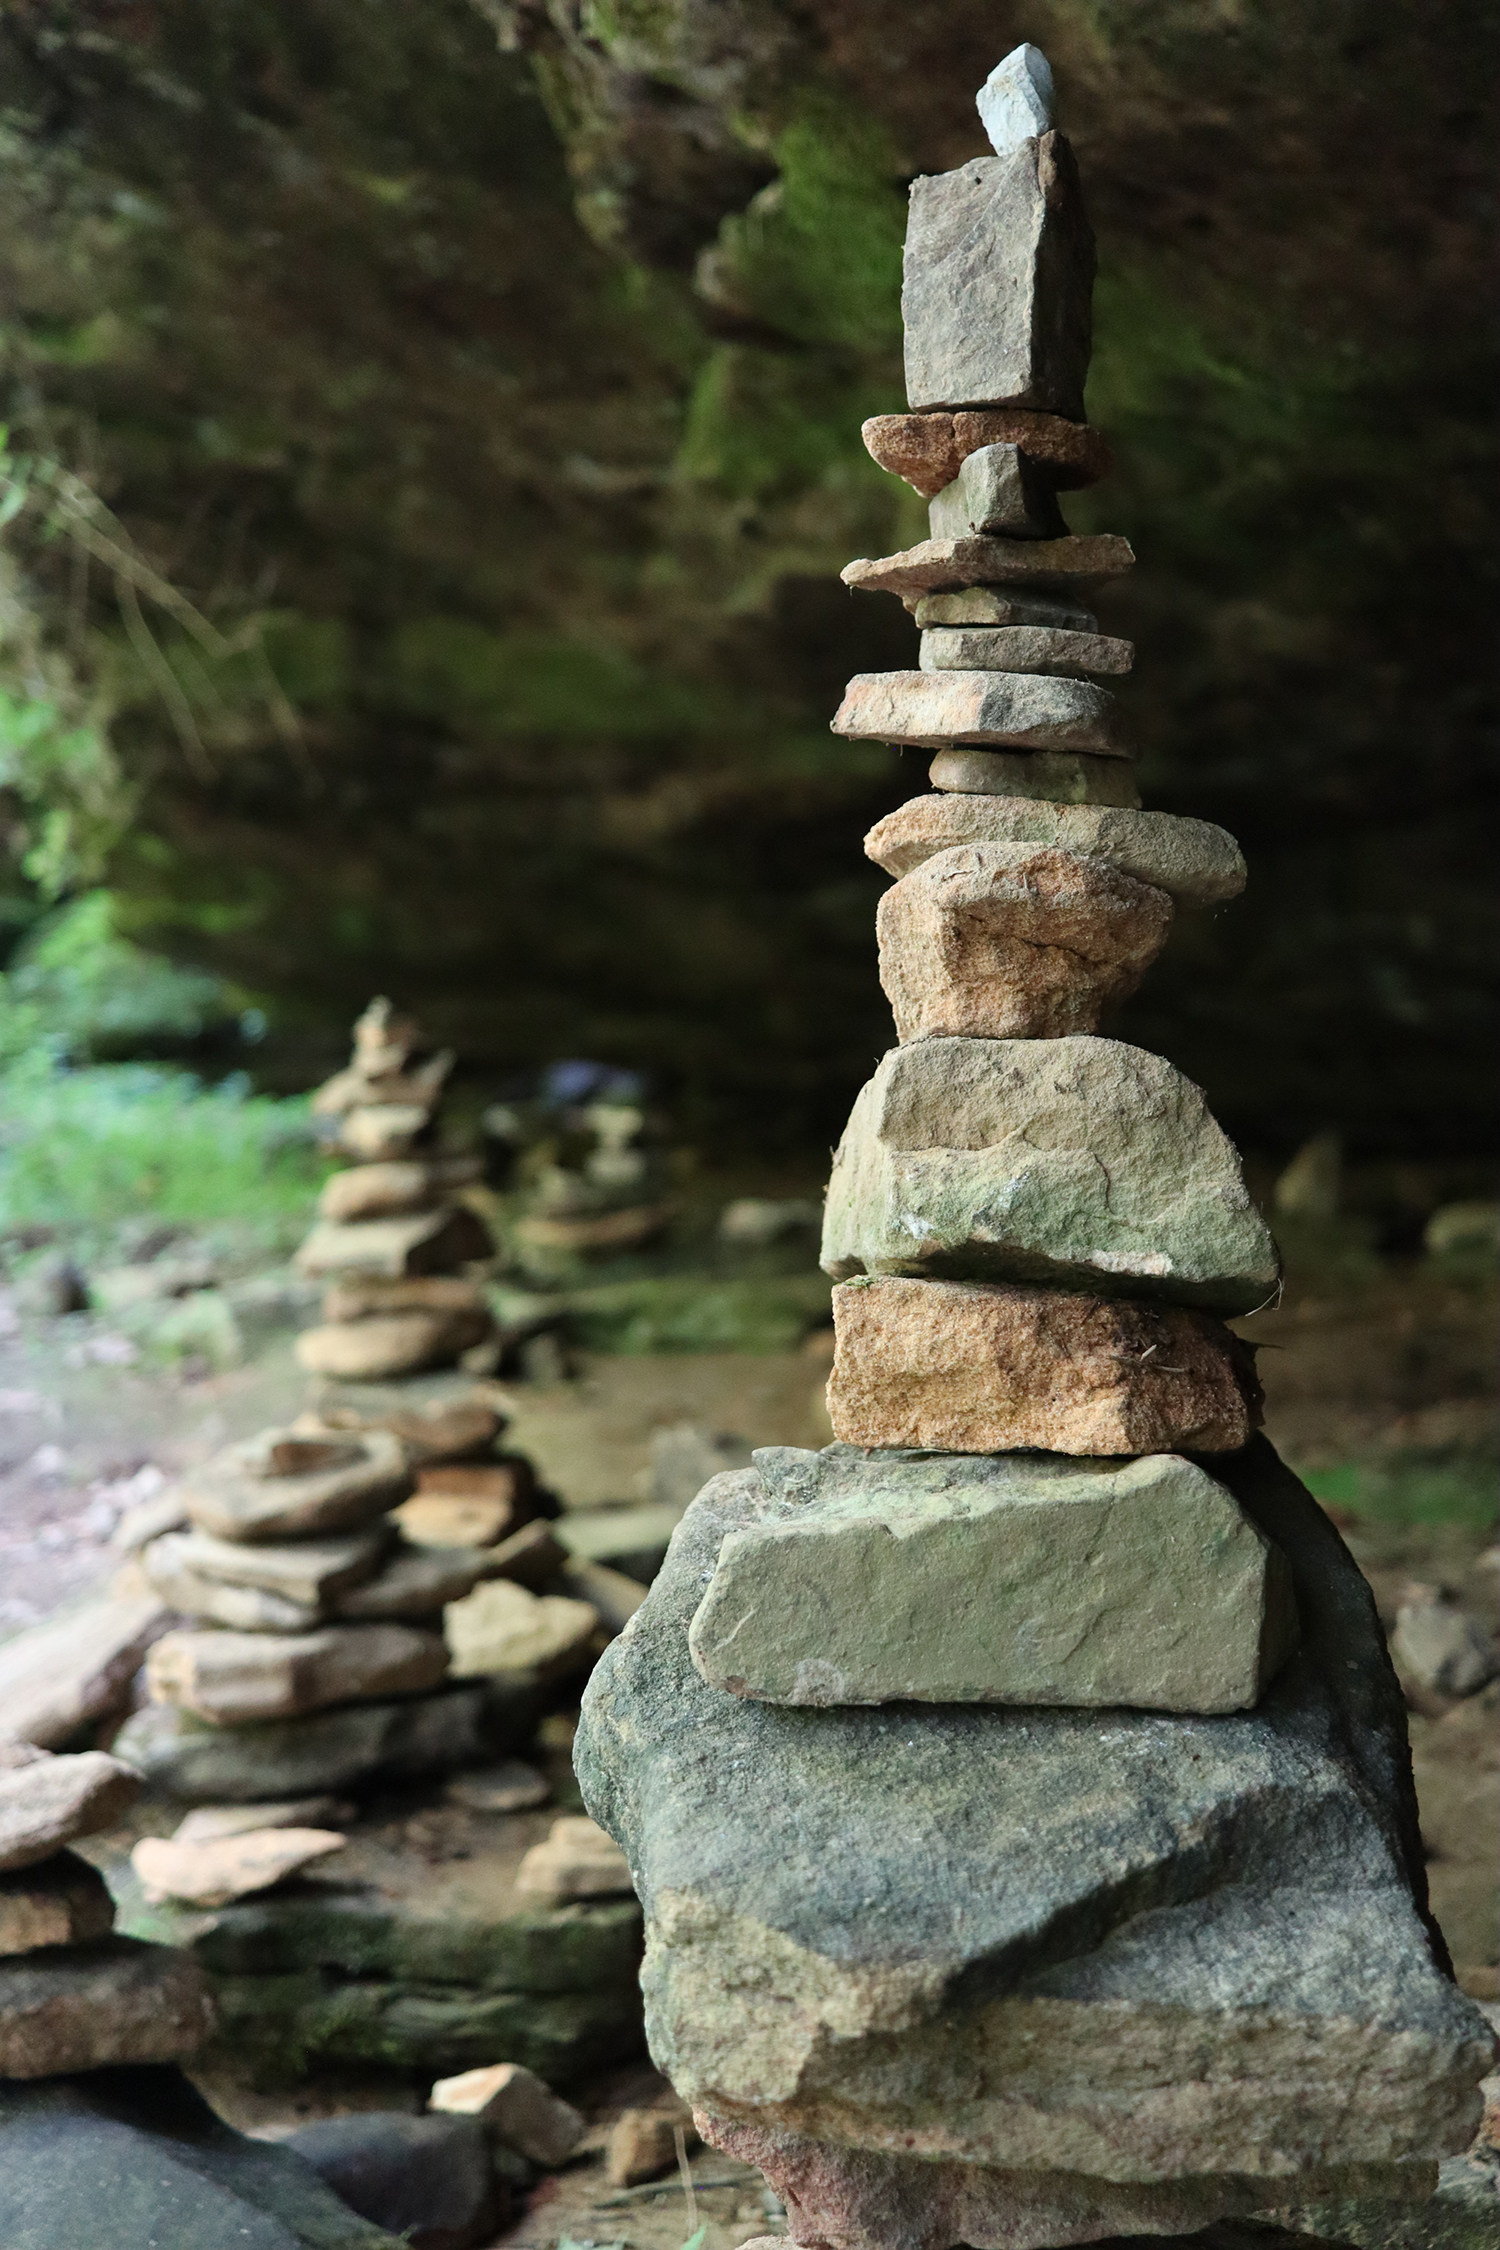 Image of stones stacked up to form a tower